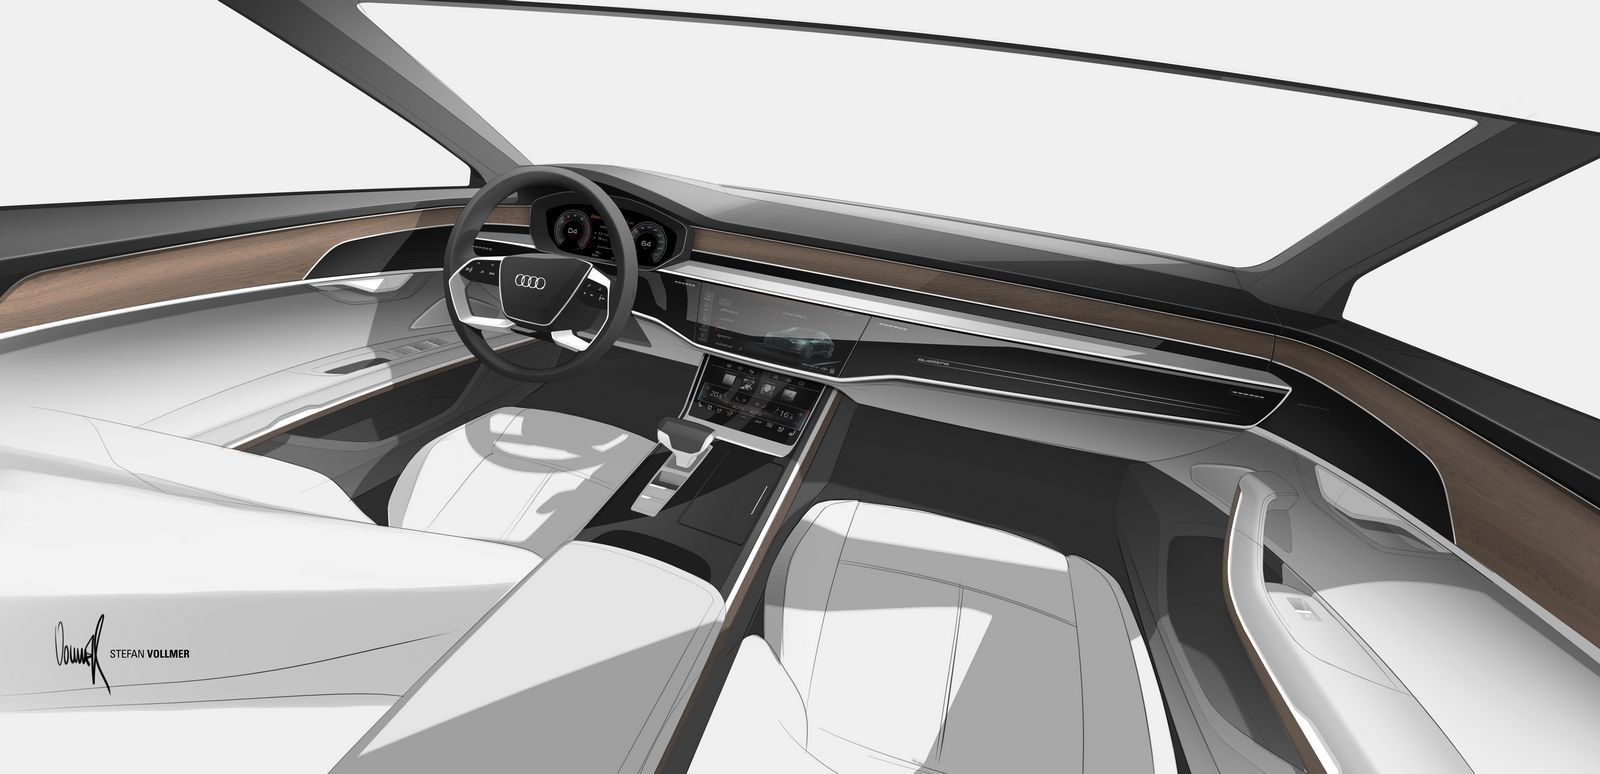 Pin By Frank Li On Cars Sketch Interior Design Sketches